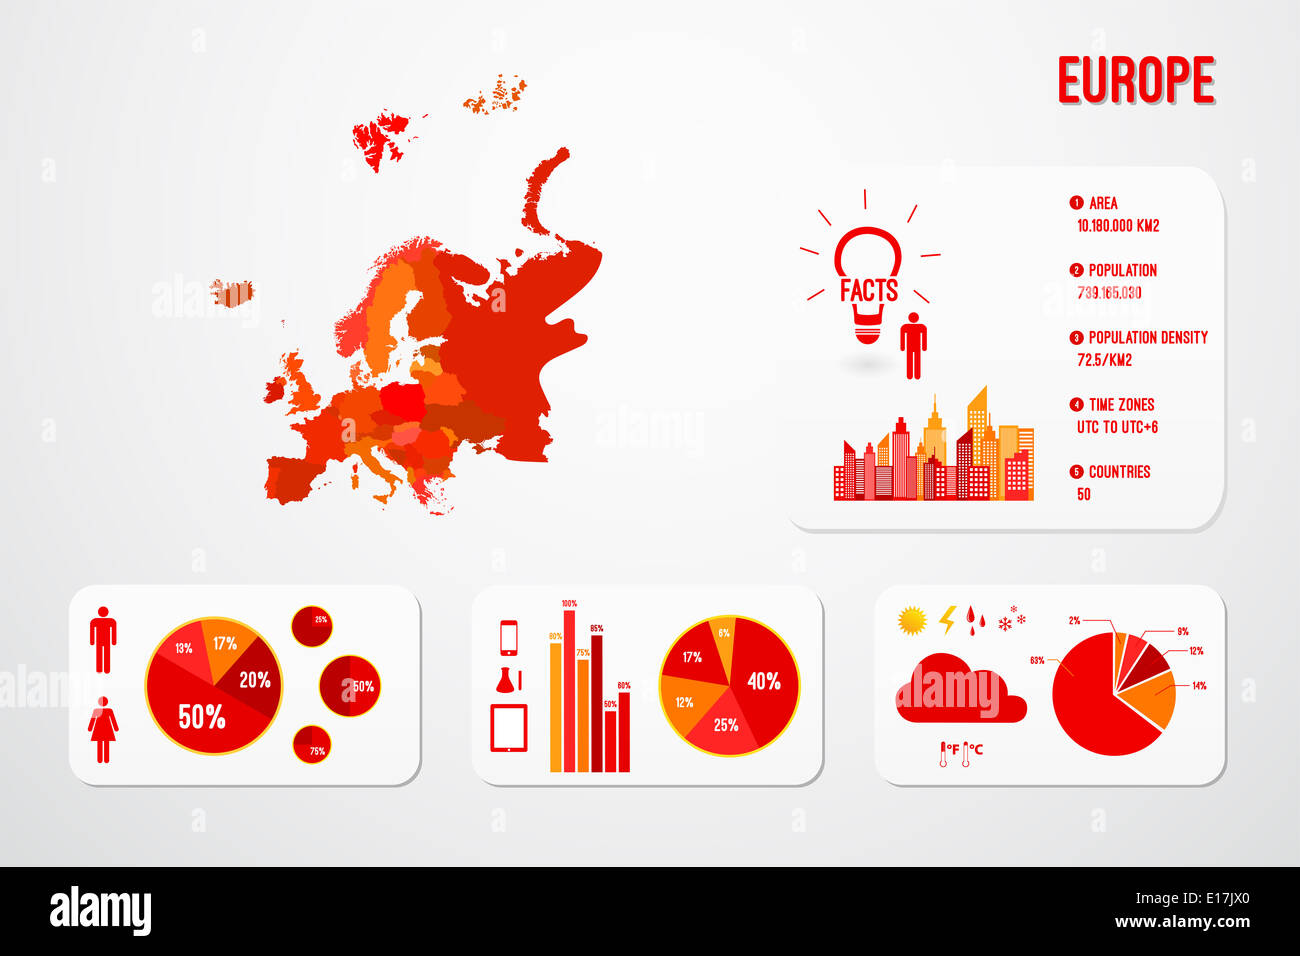 Europe Continent Map Infographics Vector - Stock Image